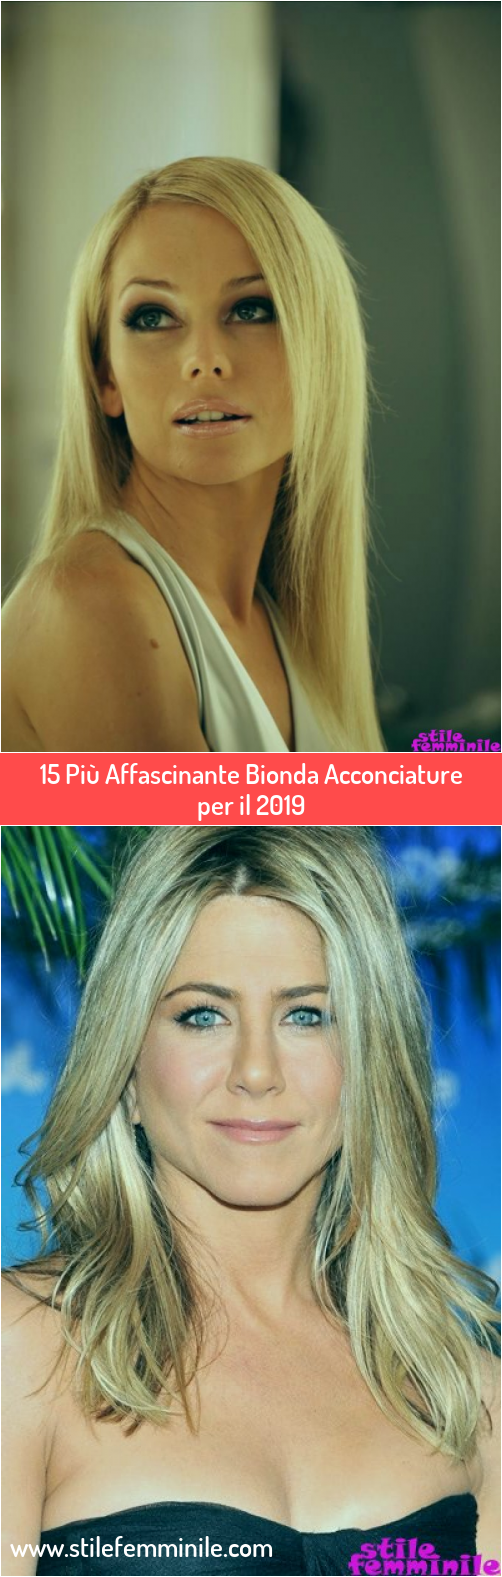 Photo of 15 Più Affascinante Bionda Acconciature per il 2019